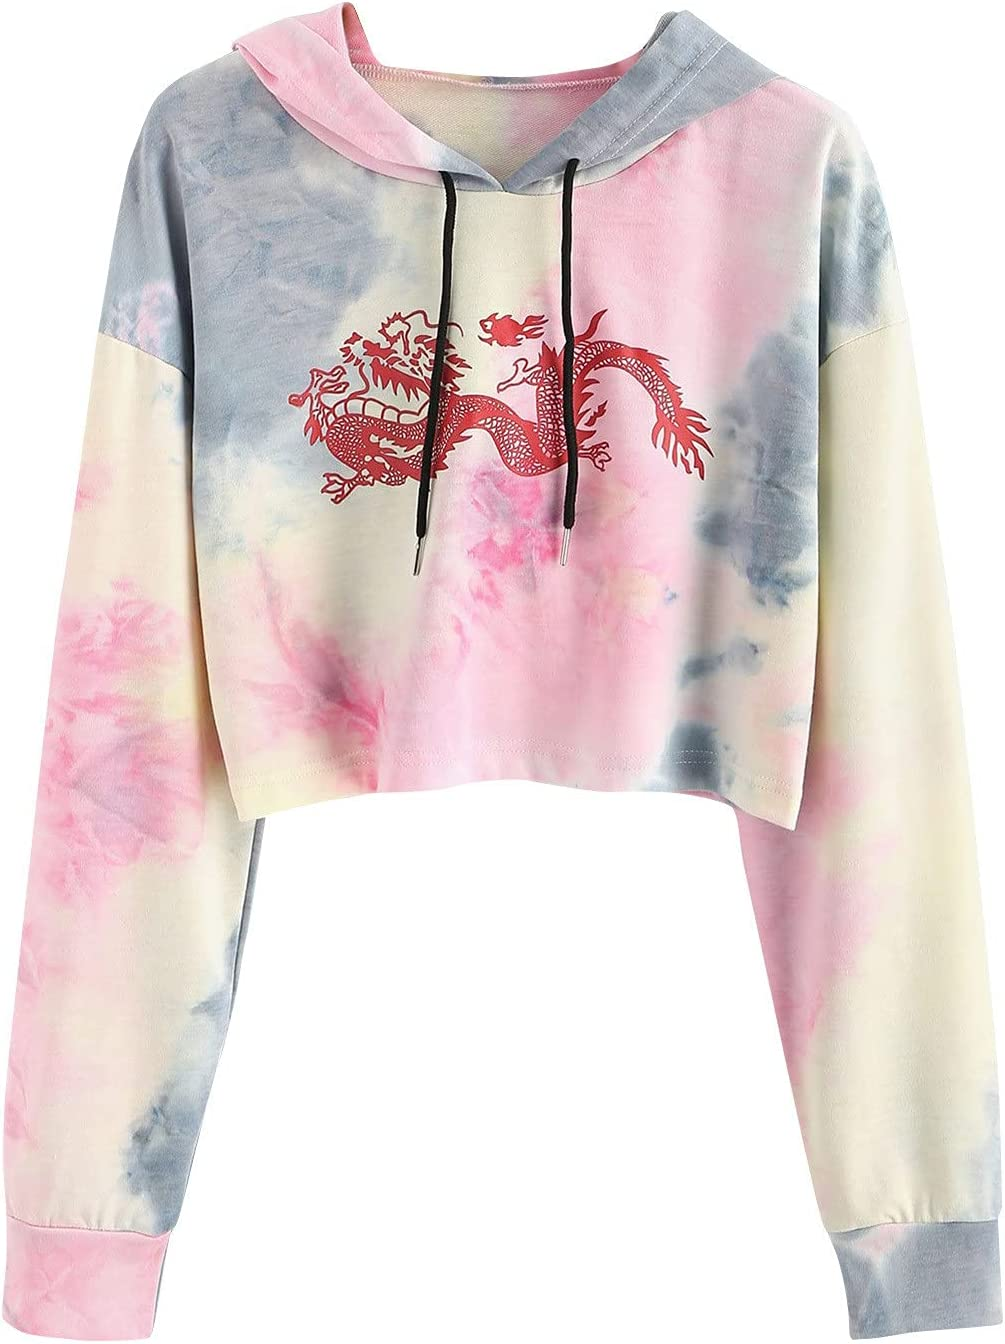 Juniors Women's Casual Printing In a popularity Drawstri List price Long Sleeve Hooded